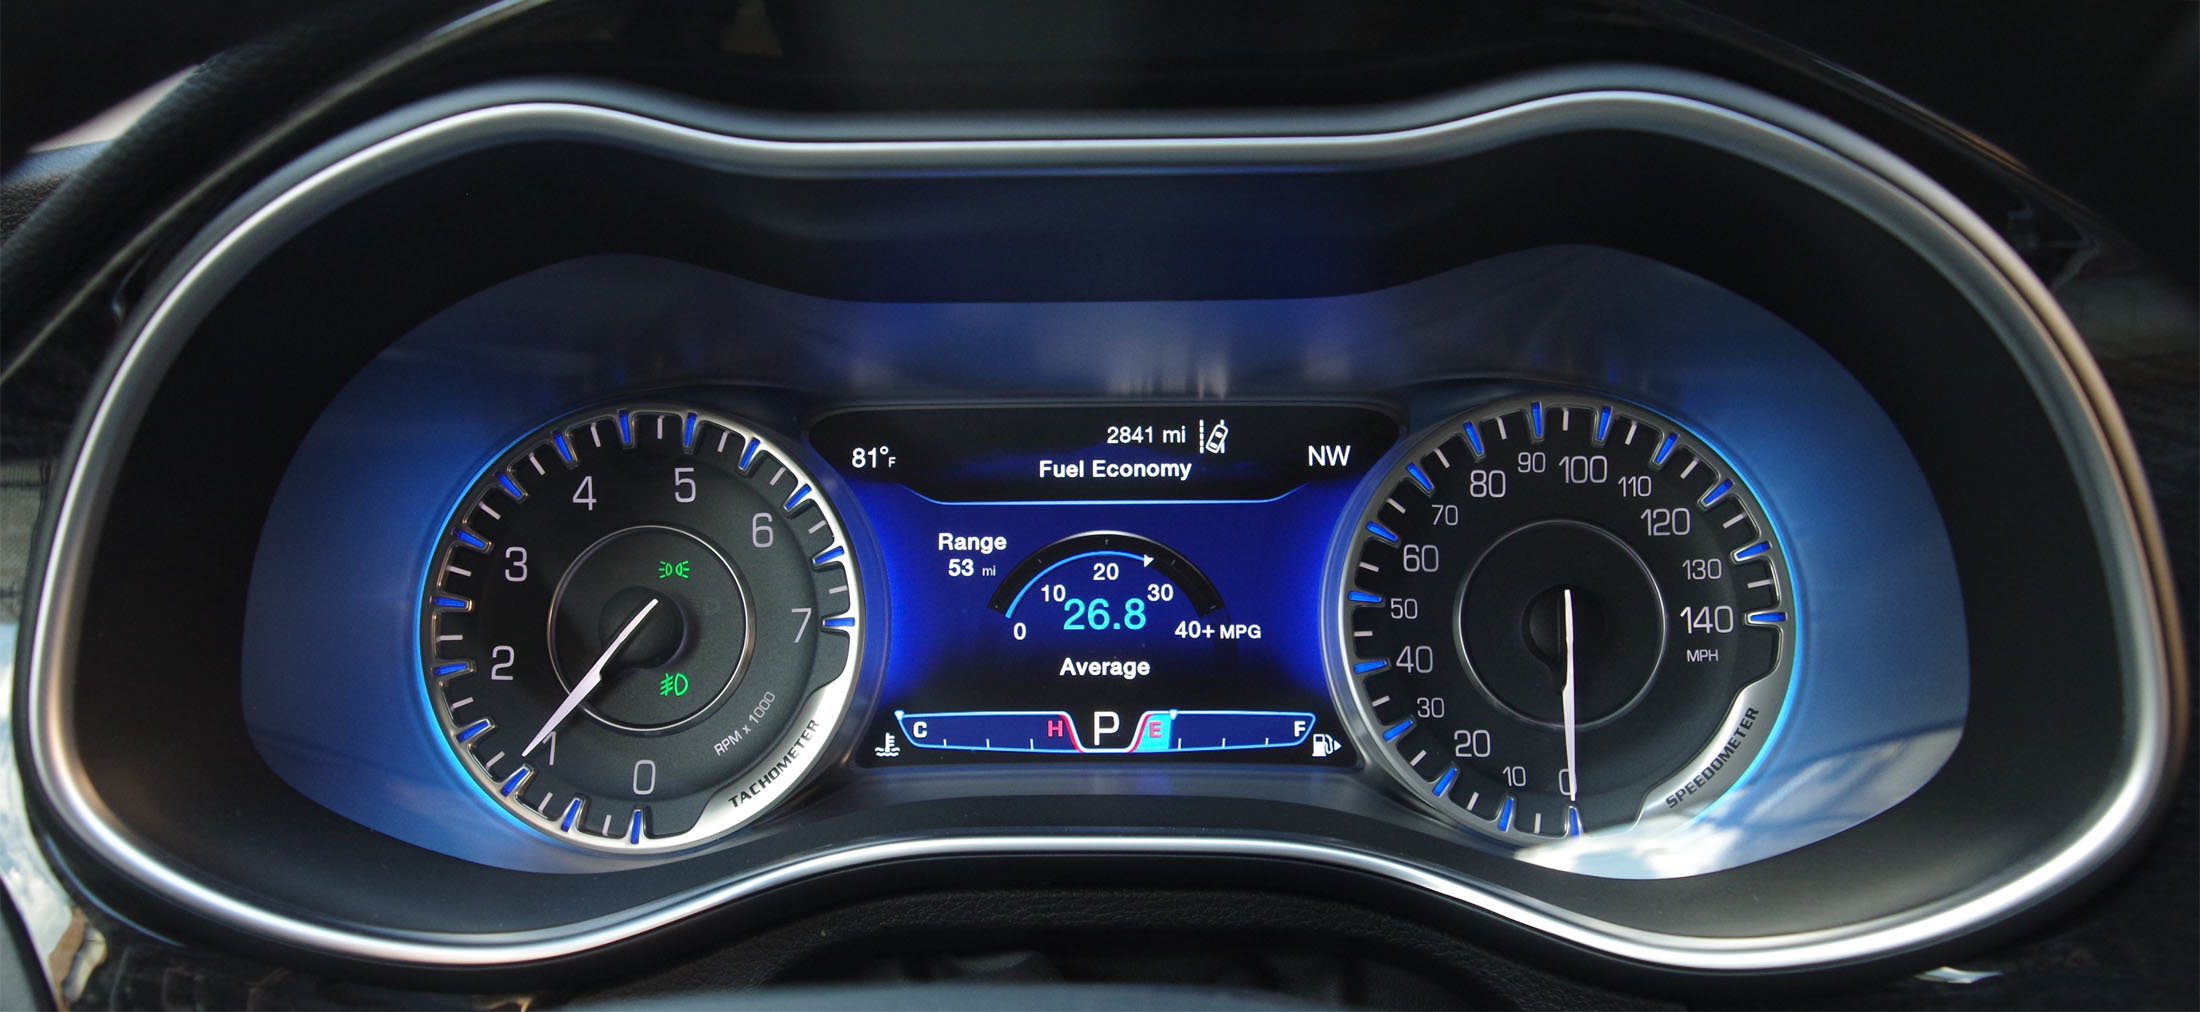 Chrysler 200 fuel economy